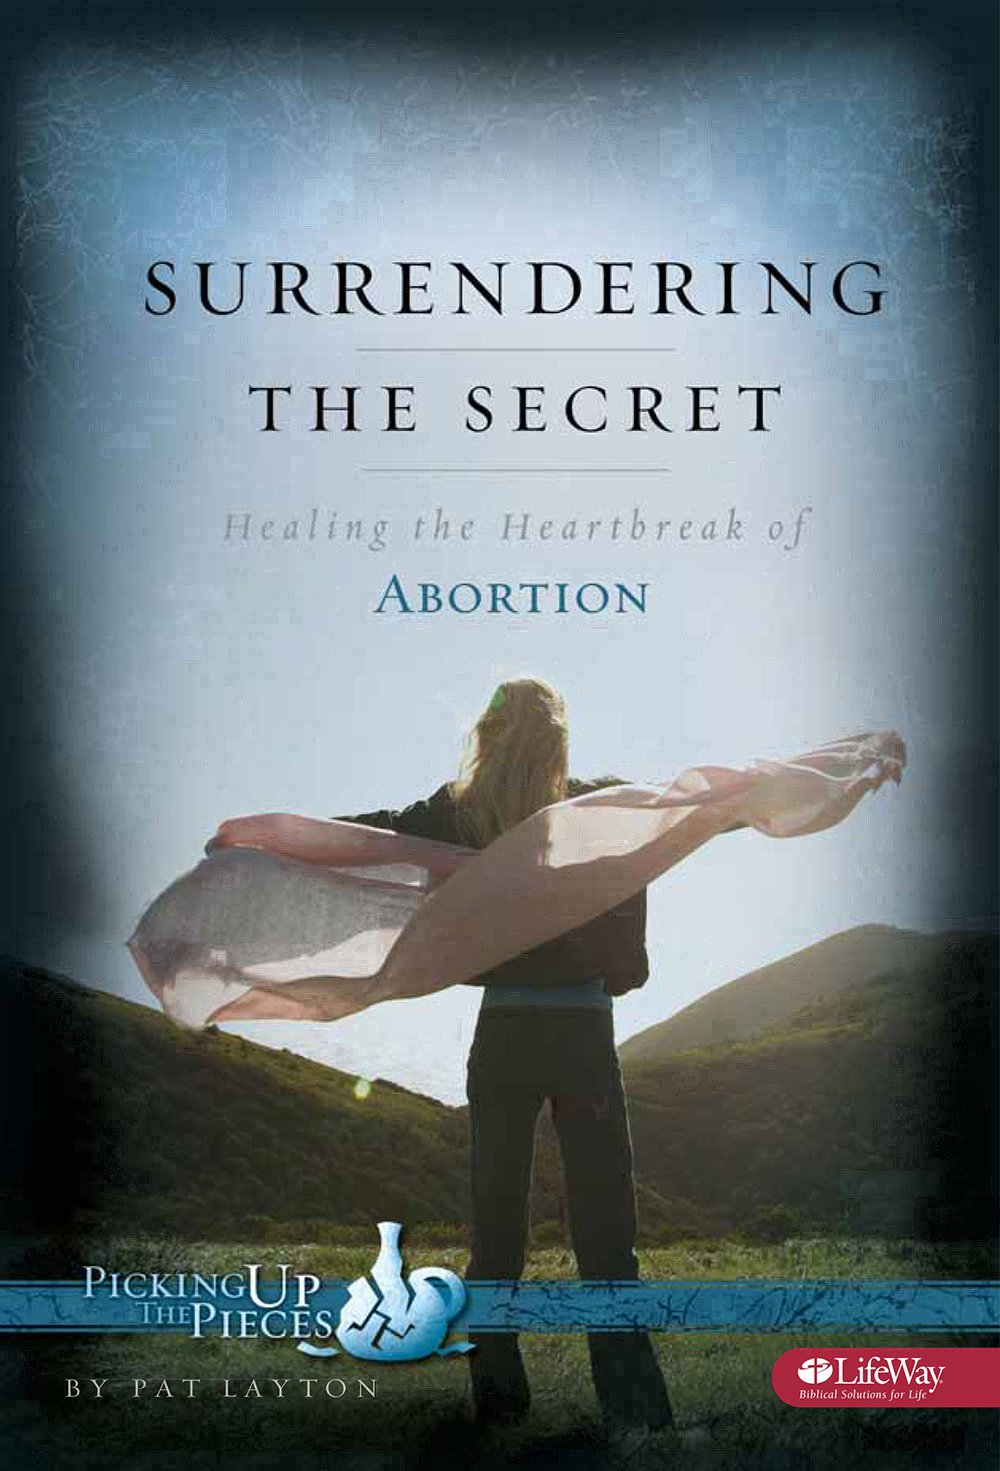 Download Surrendering the Secret: Healing the Heartbreak of Abortion (Picking Up the Pieces Series) pdf